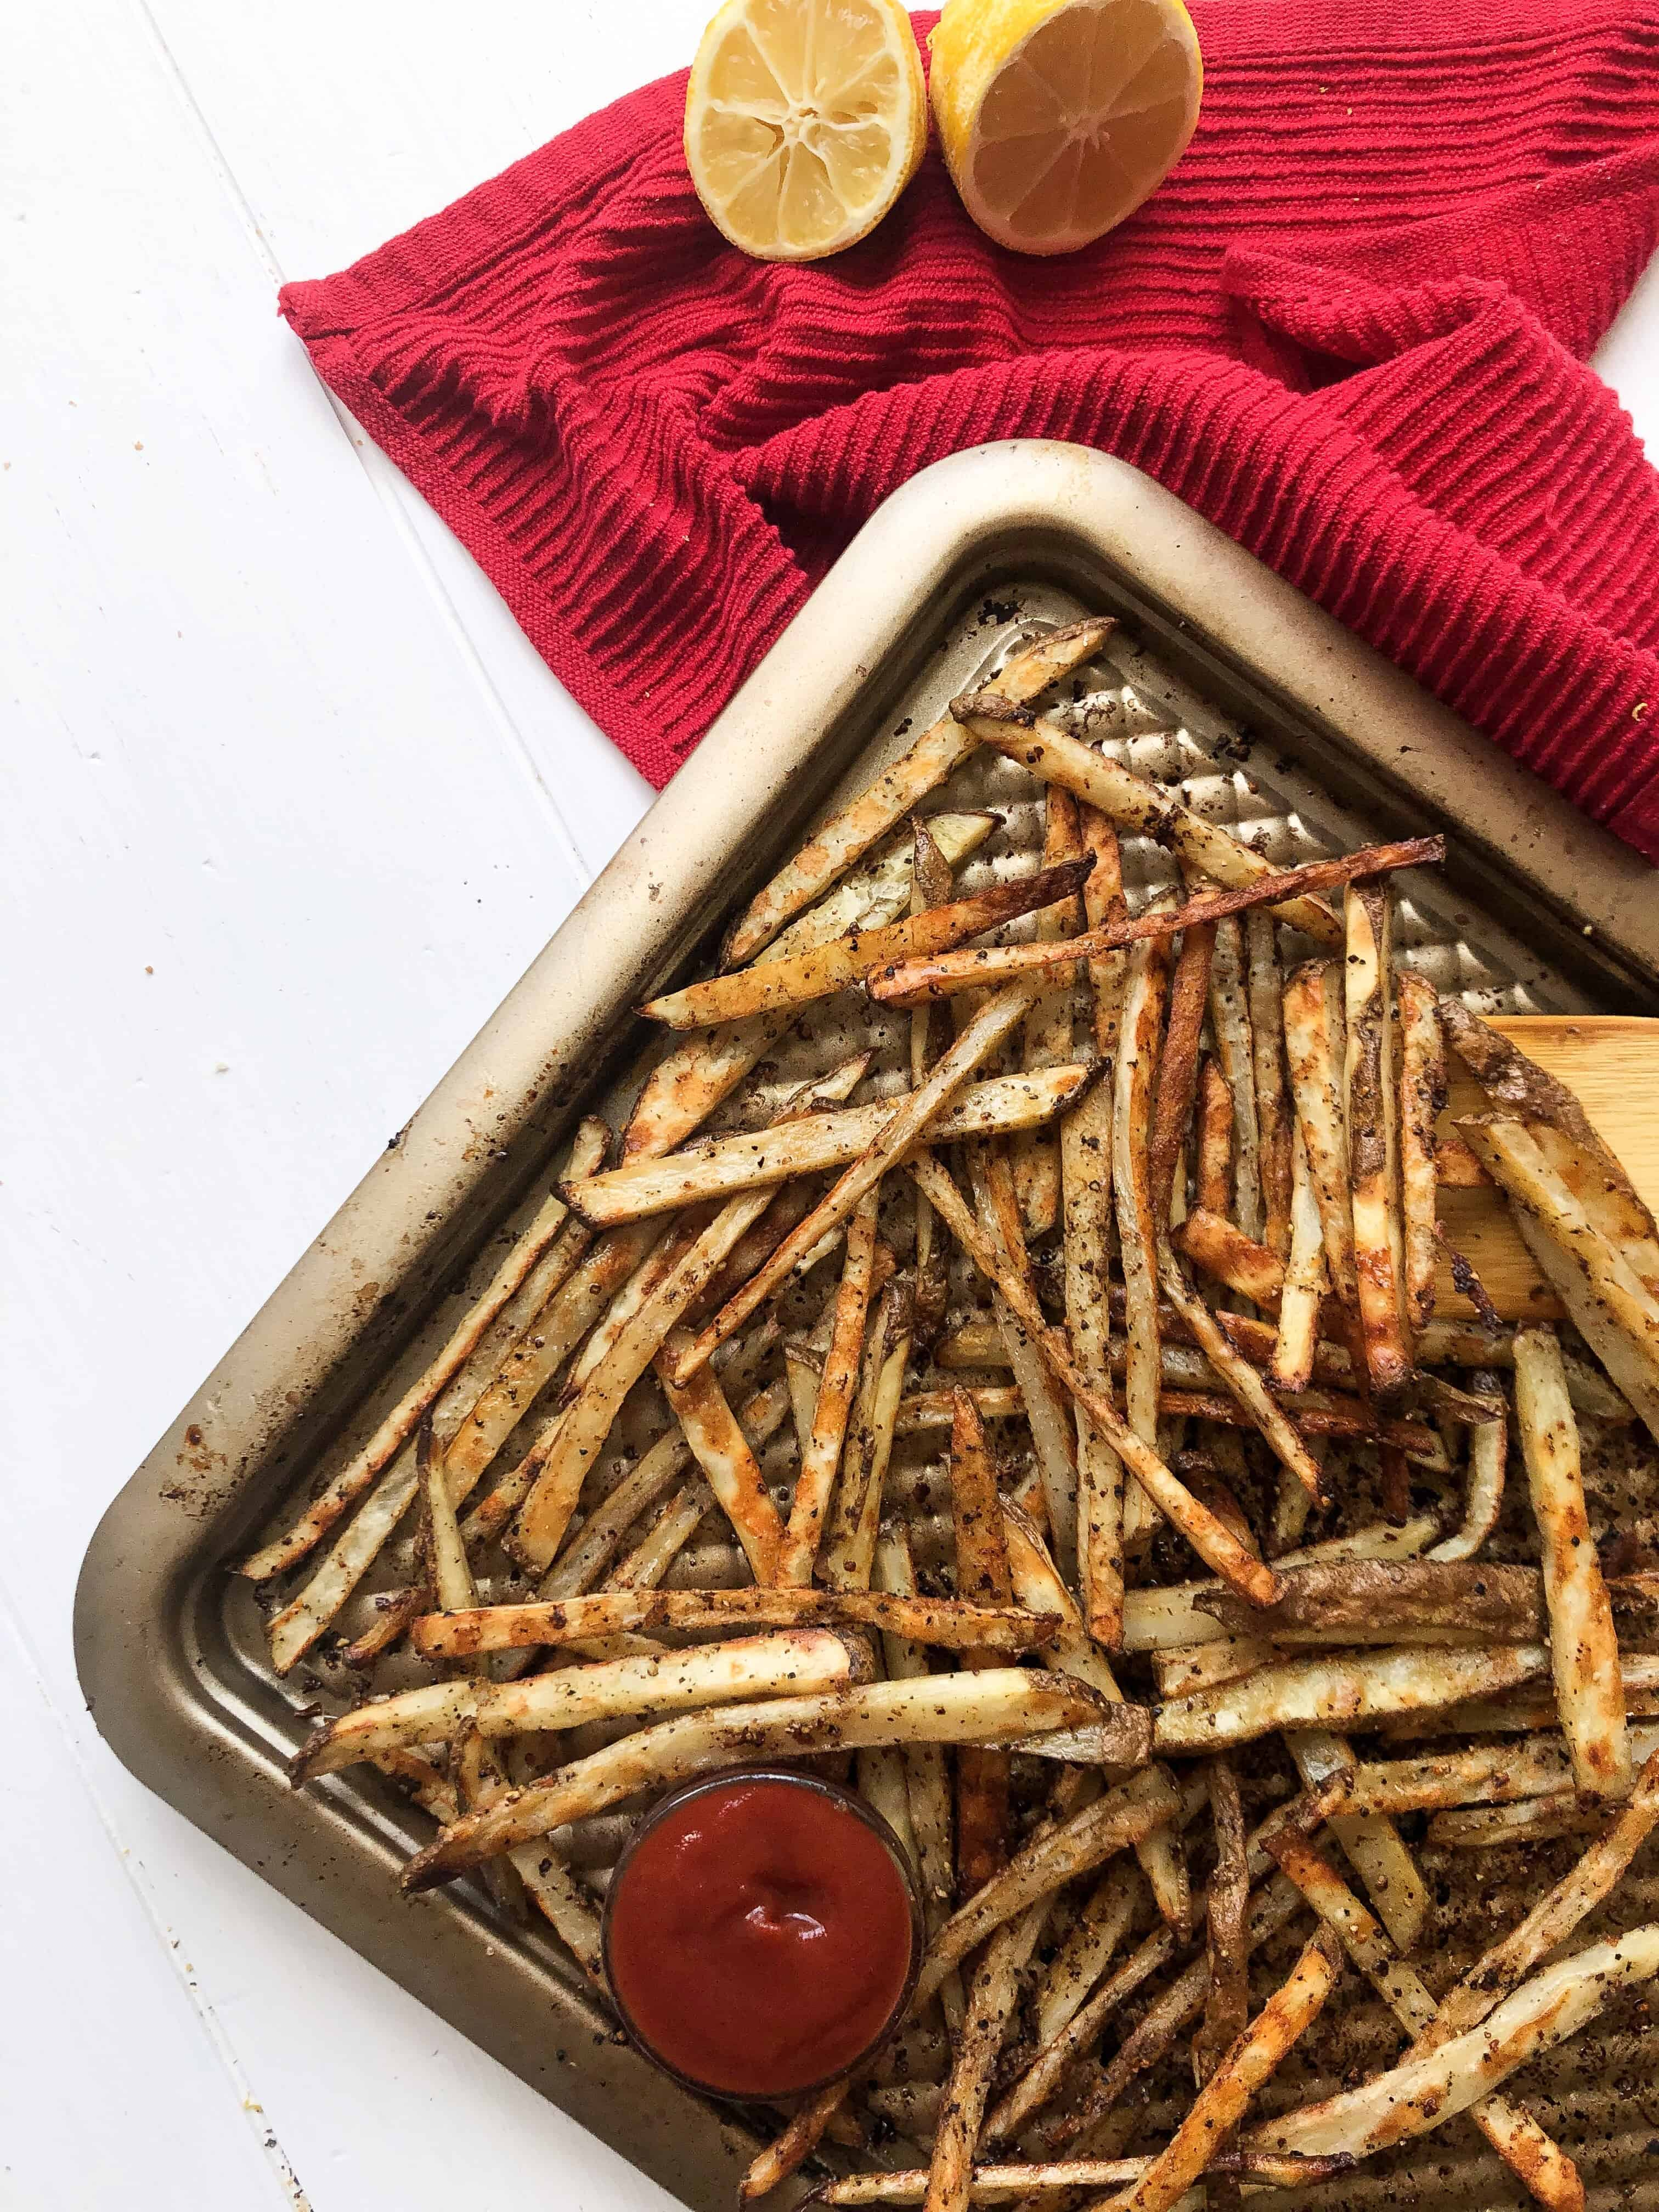 A sheet pan of lemon pepper fries with ketchup